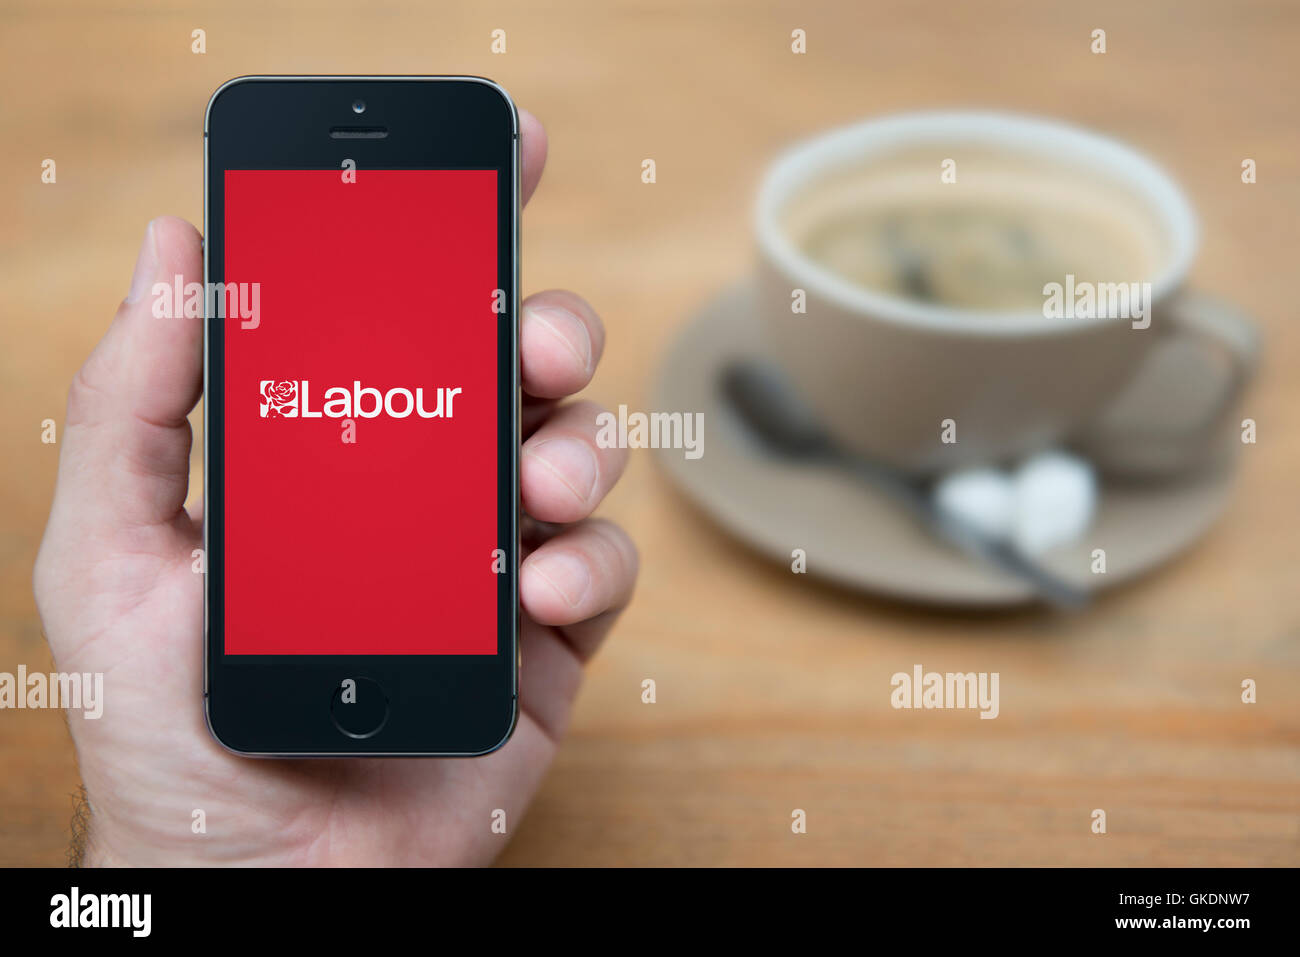 A man looks at his iPhone which displays the Labour Party logo, while sat with a cup of coffee (Editorial use only). - Stock Image